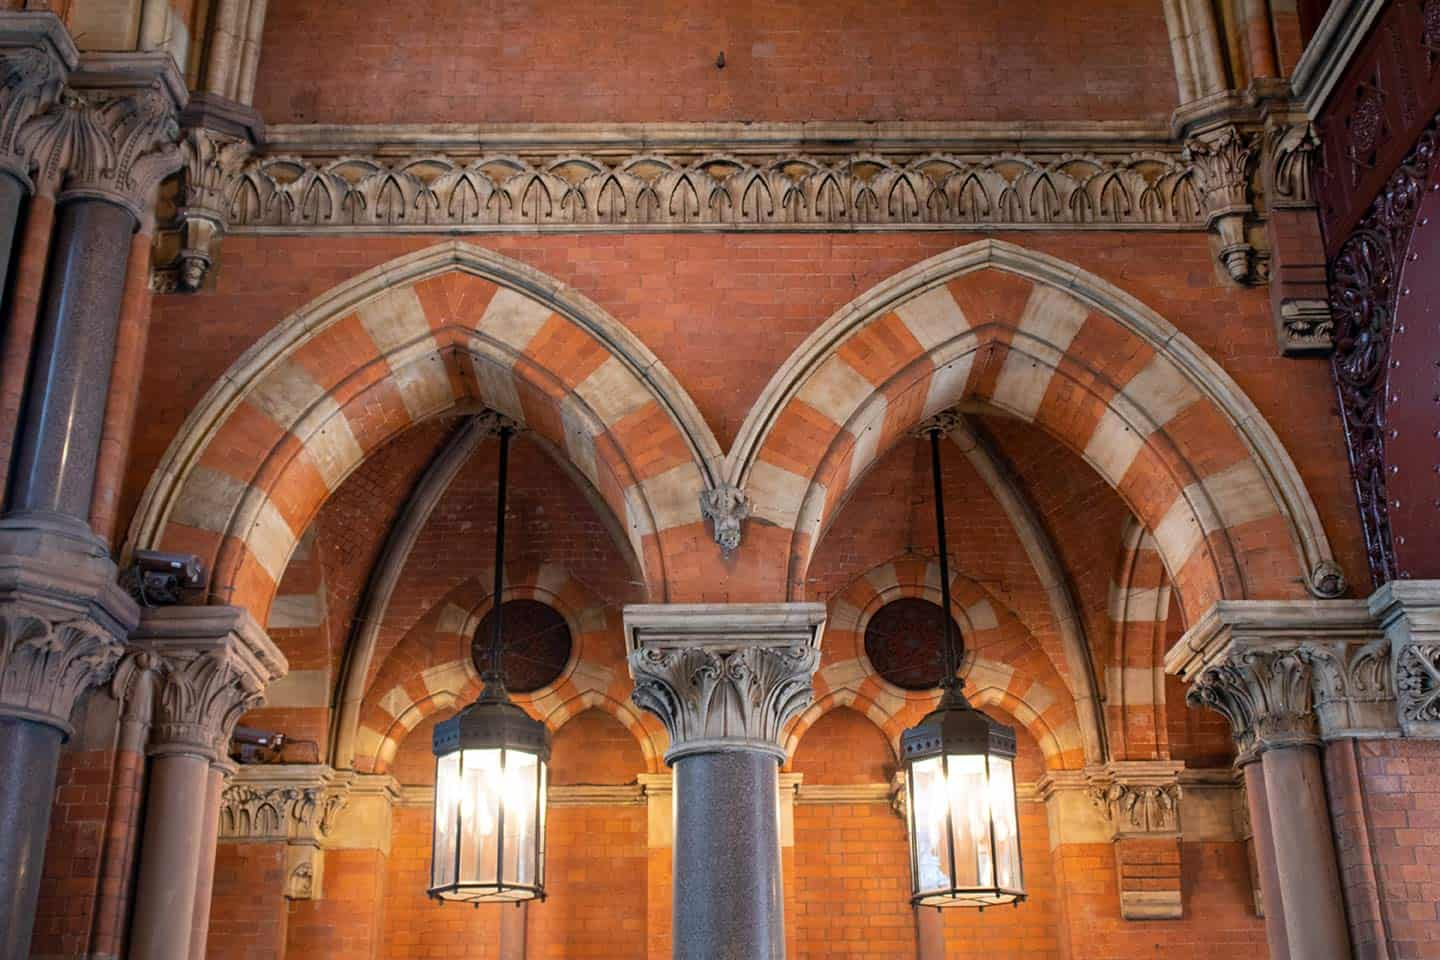 Image of Gothic arches at St Pancras Station London